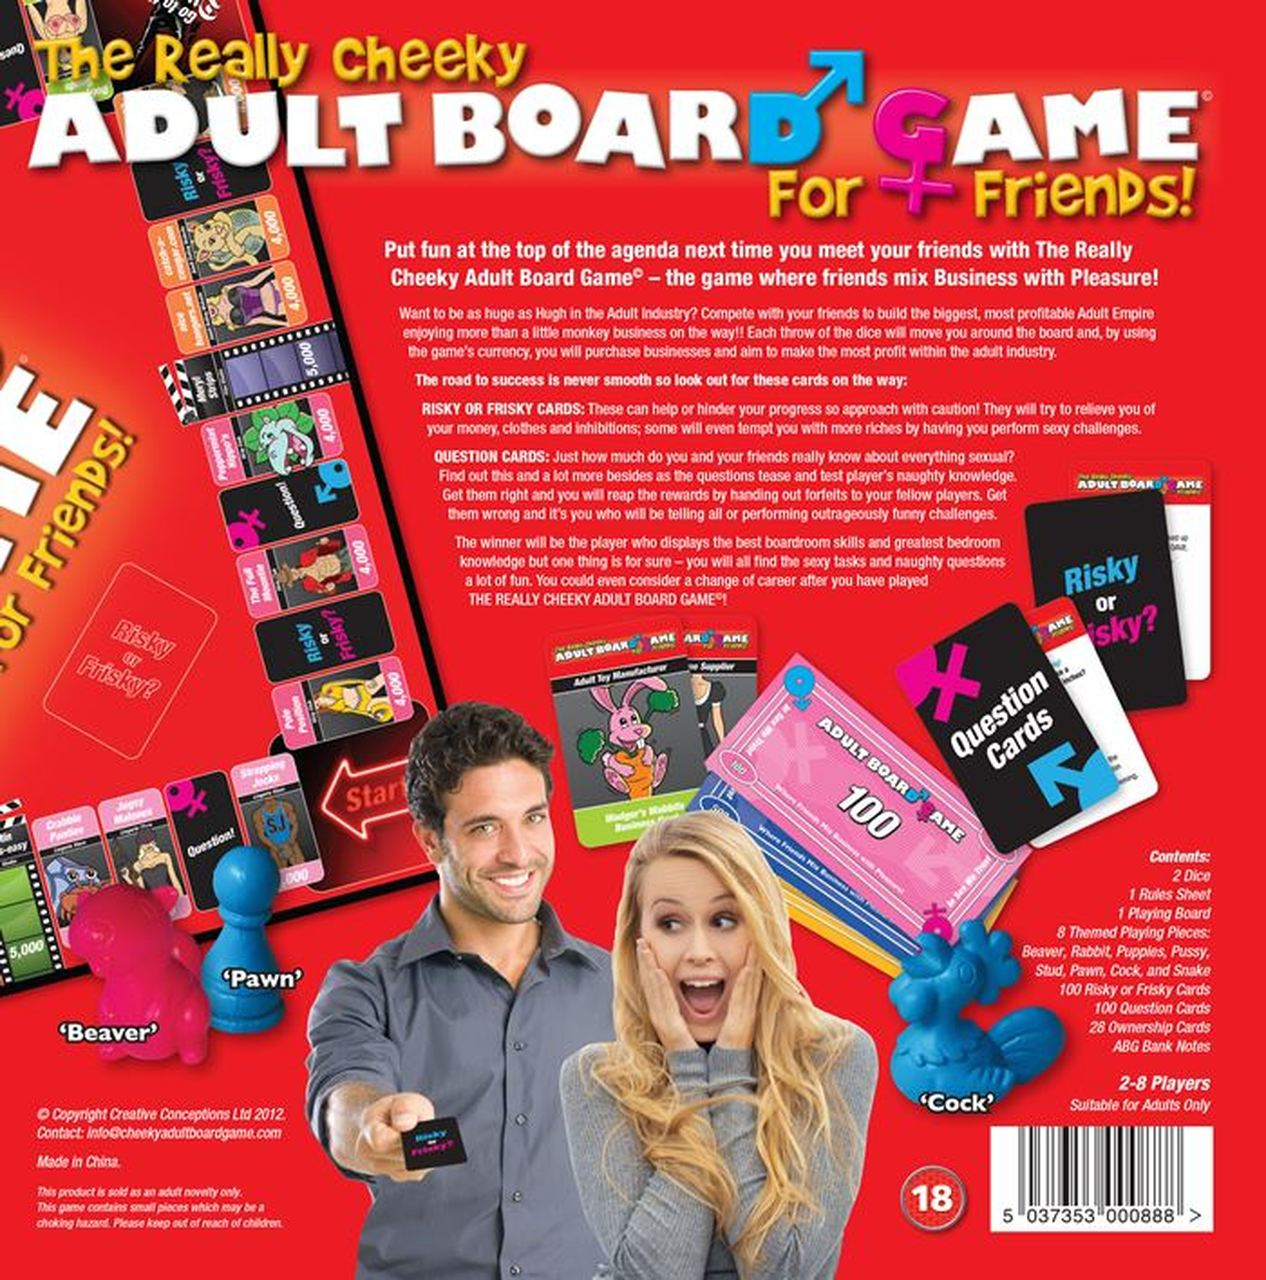 Creative Conceptions A Really Cheeky Adult Board Game for Friends 5037353000888 Rear Boxview